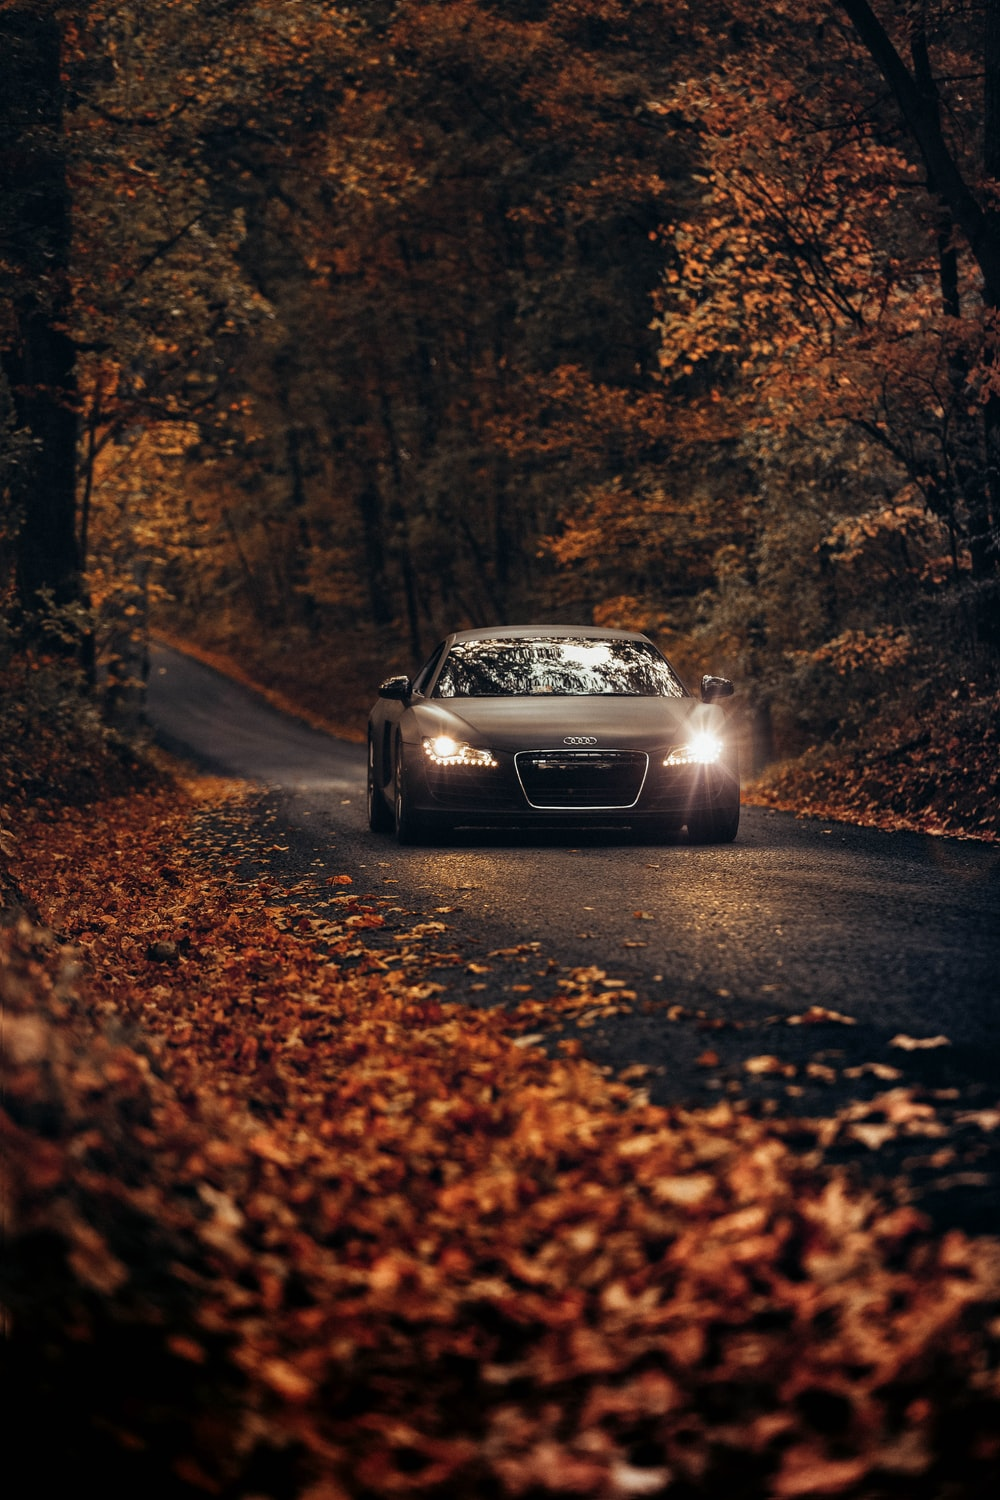 500 Audi Pictures Hd Download Free Images On Unsplash